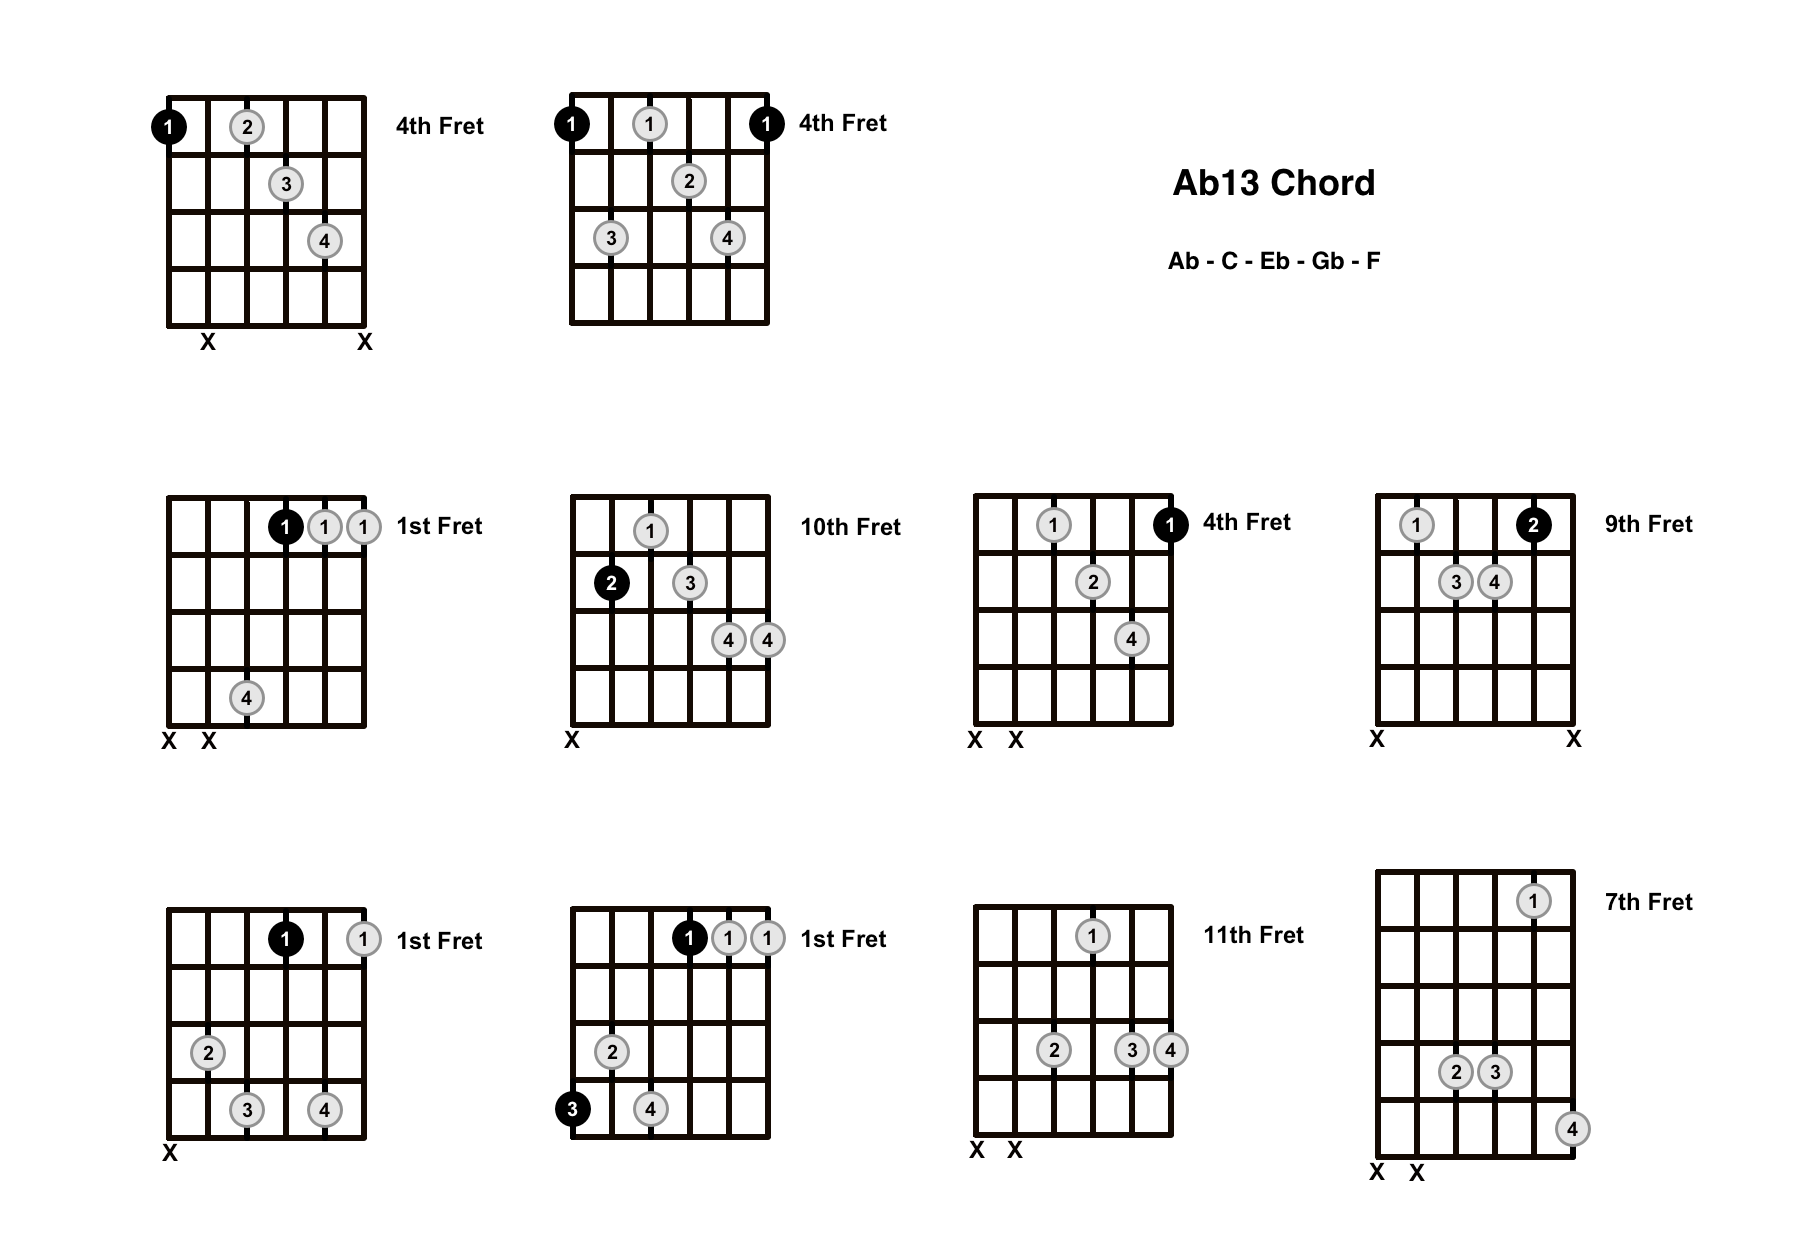 Ab13 Chord On The Guitar (A Flat 13) – Diagrams, Finger Positions and Theory